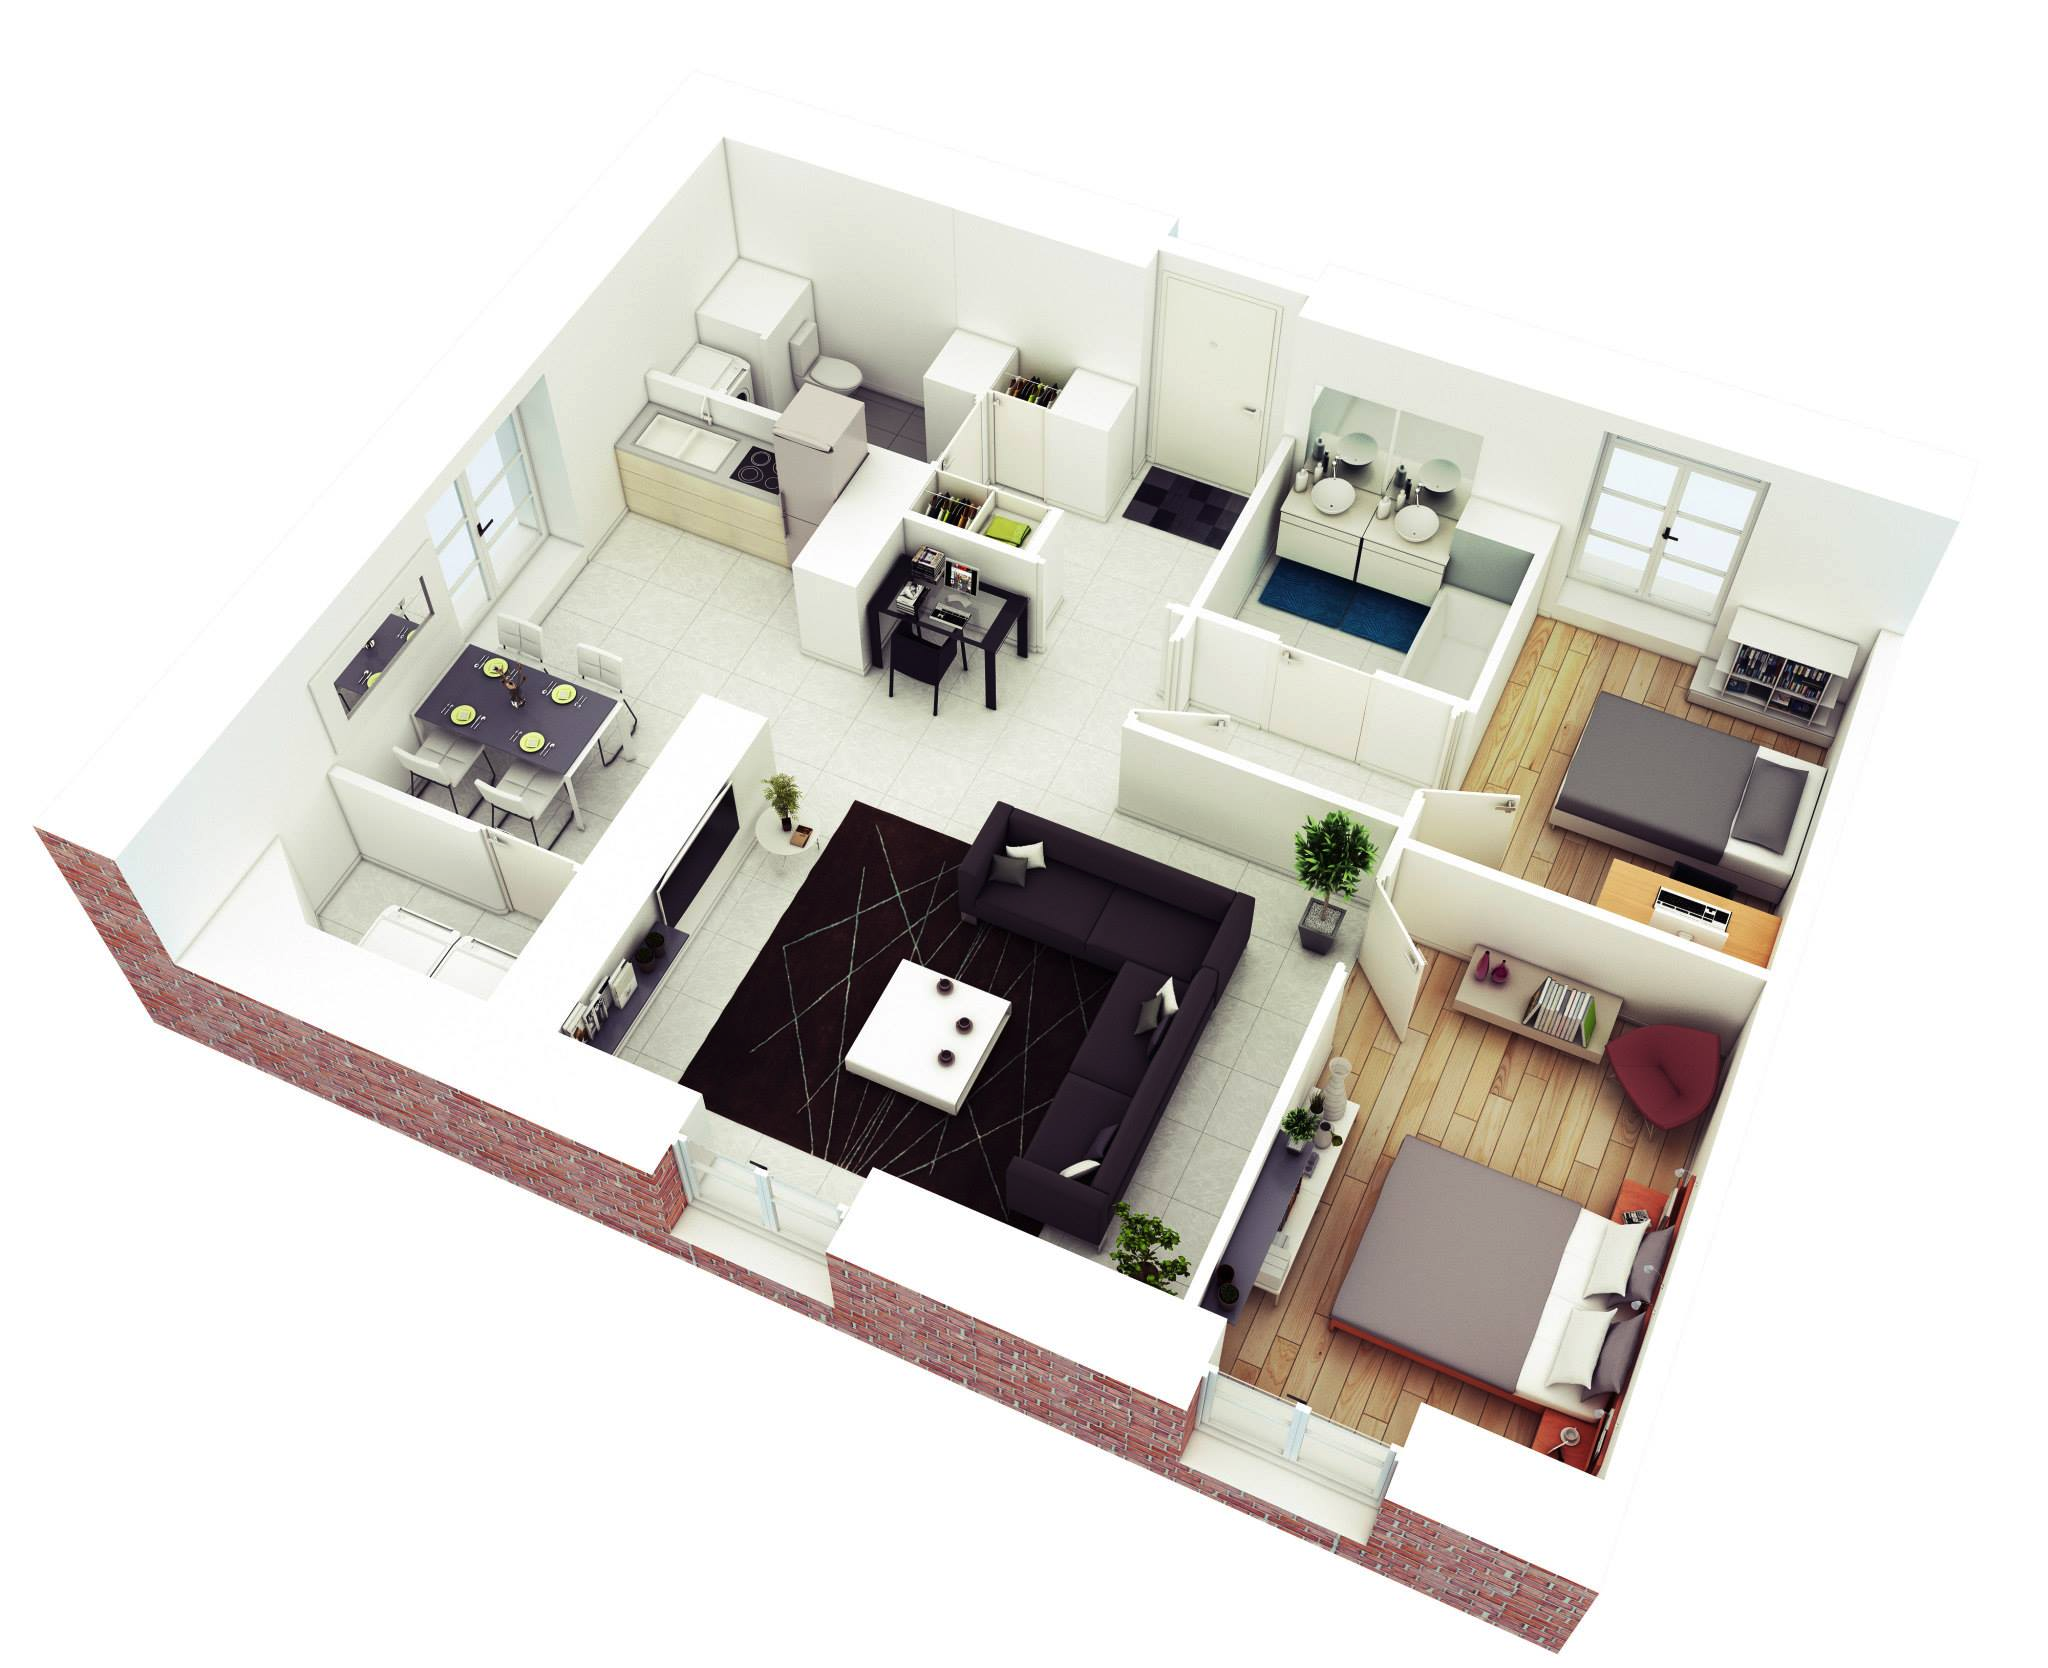 More Bedroom D Floor Plans - Simple 2 bedroom house design